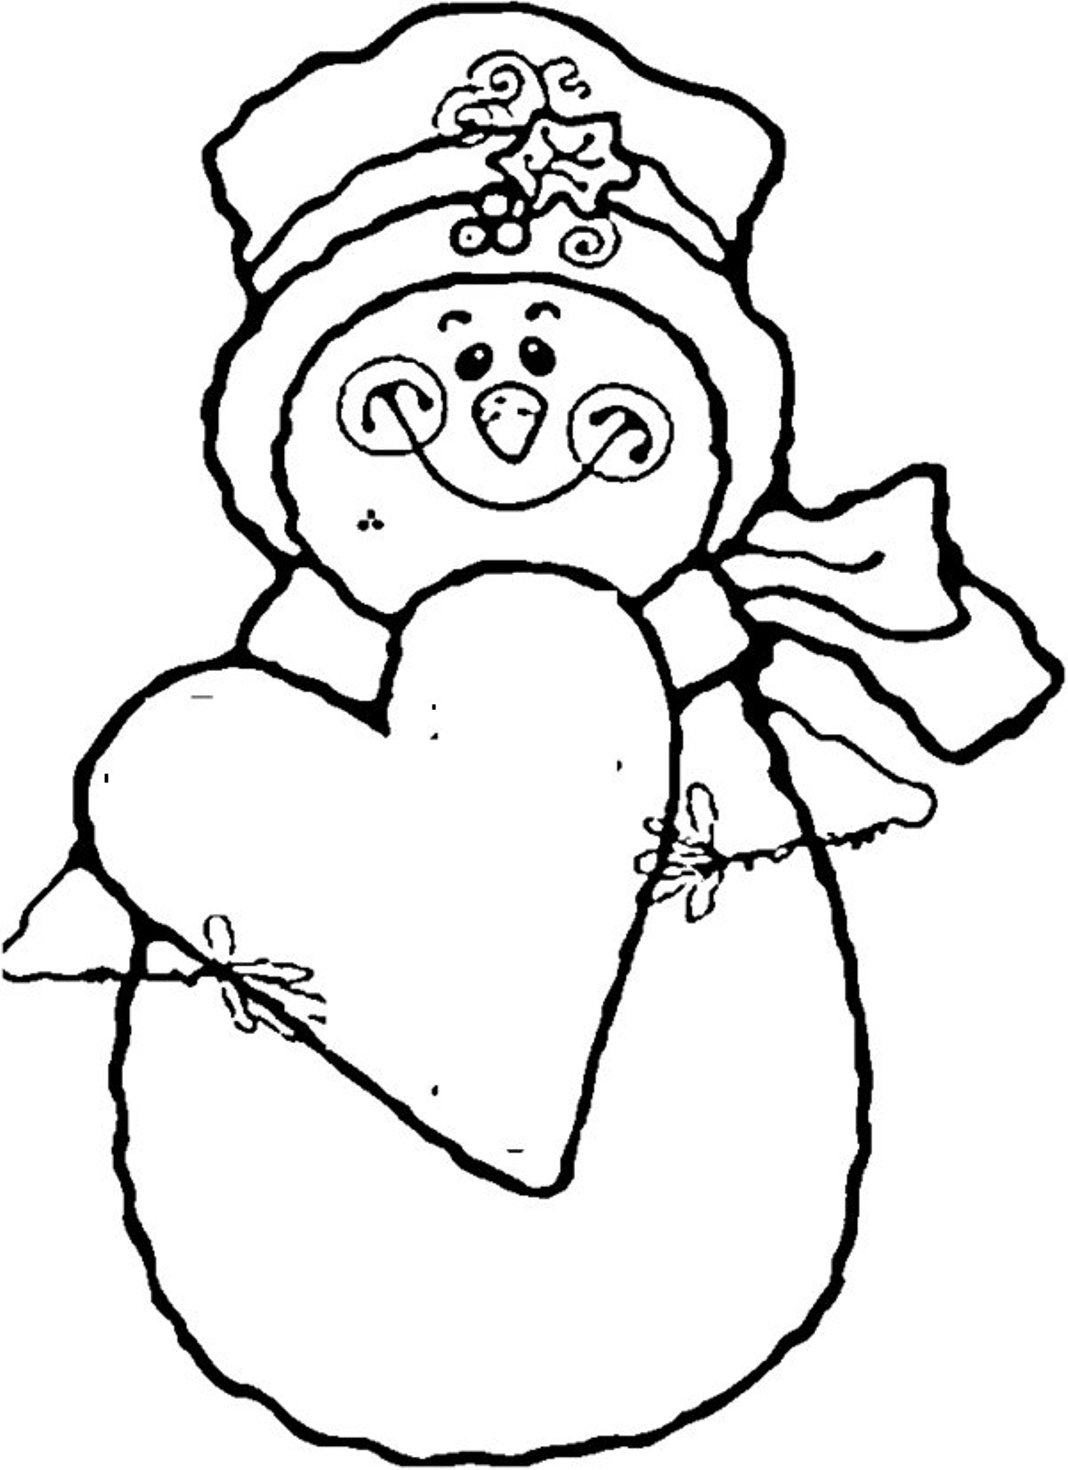 Exceptional image with snowman printable coloring page